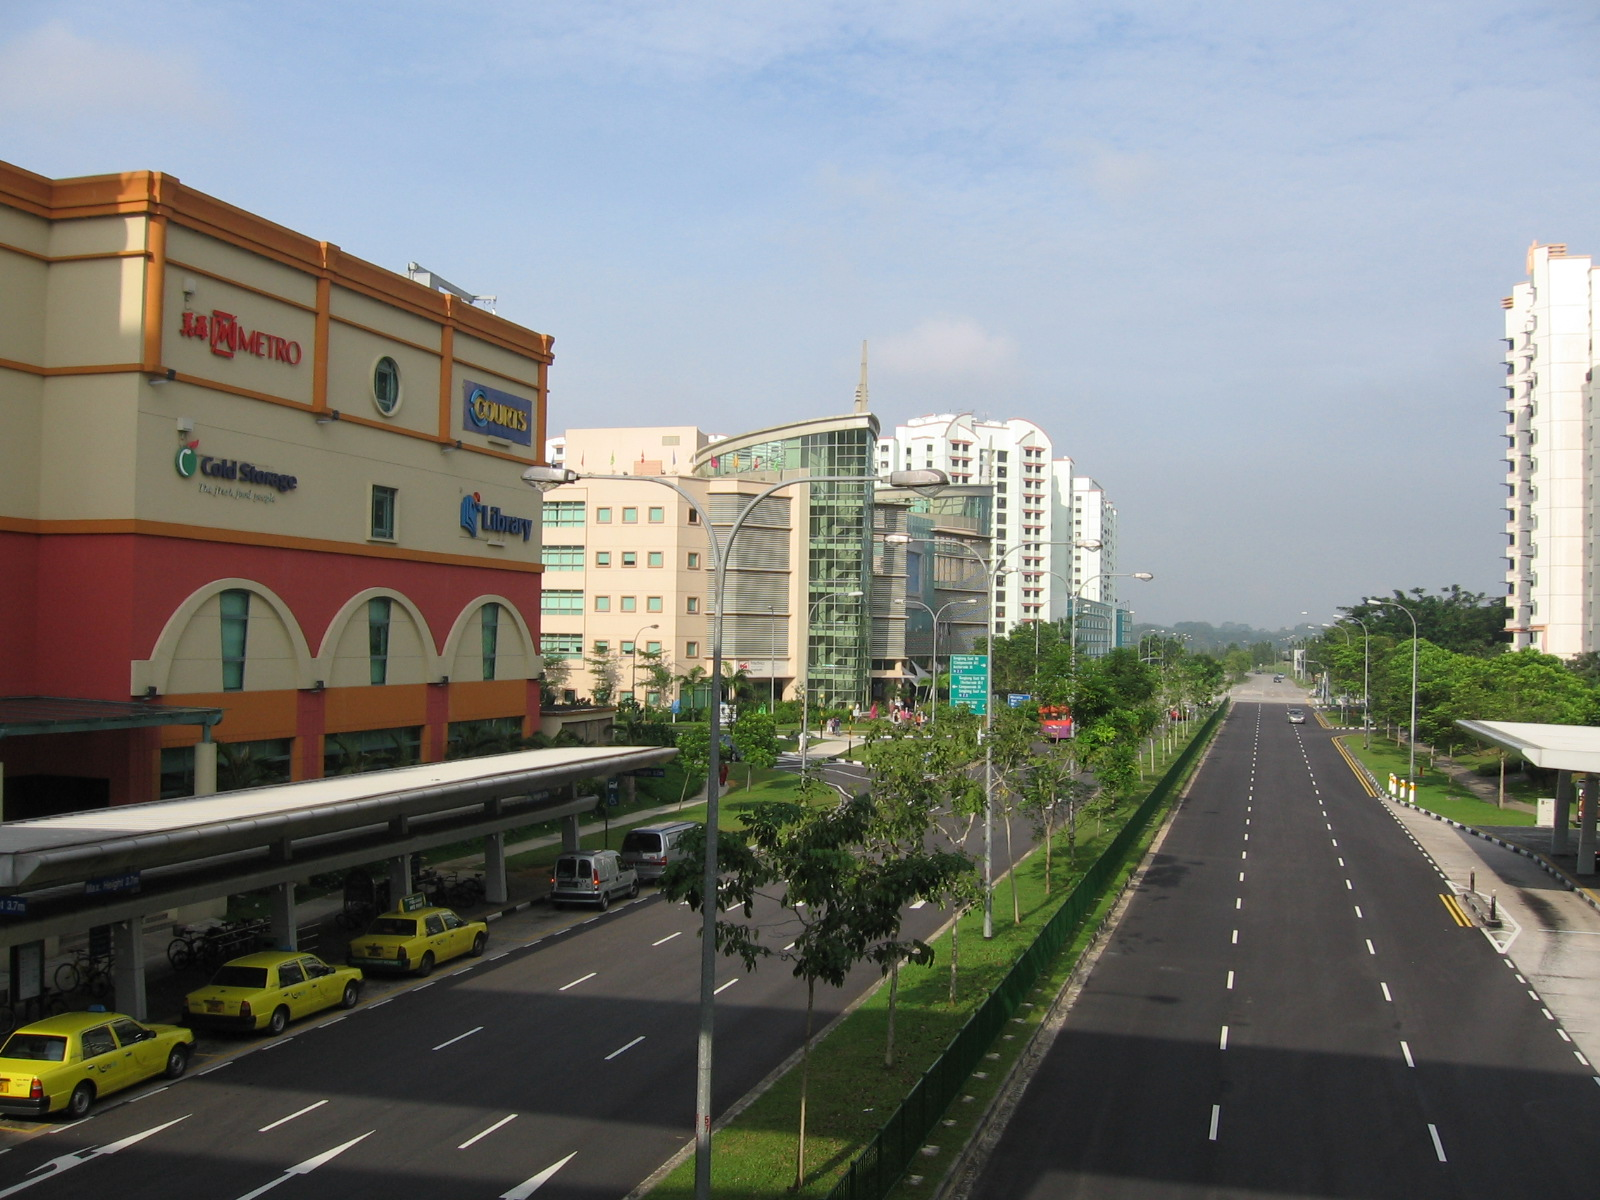 Sengkang has curiously attracted the attention of many EC developers